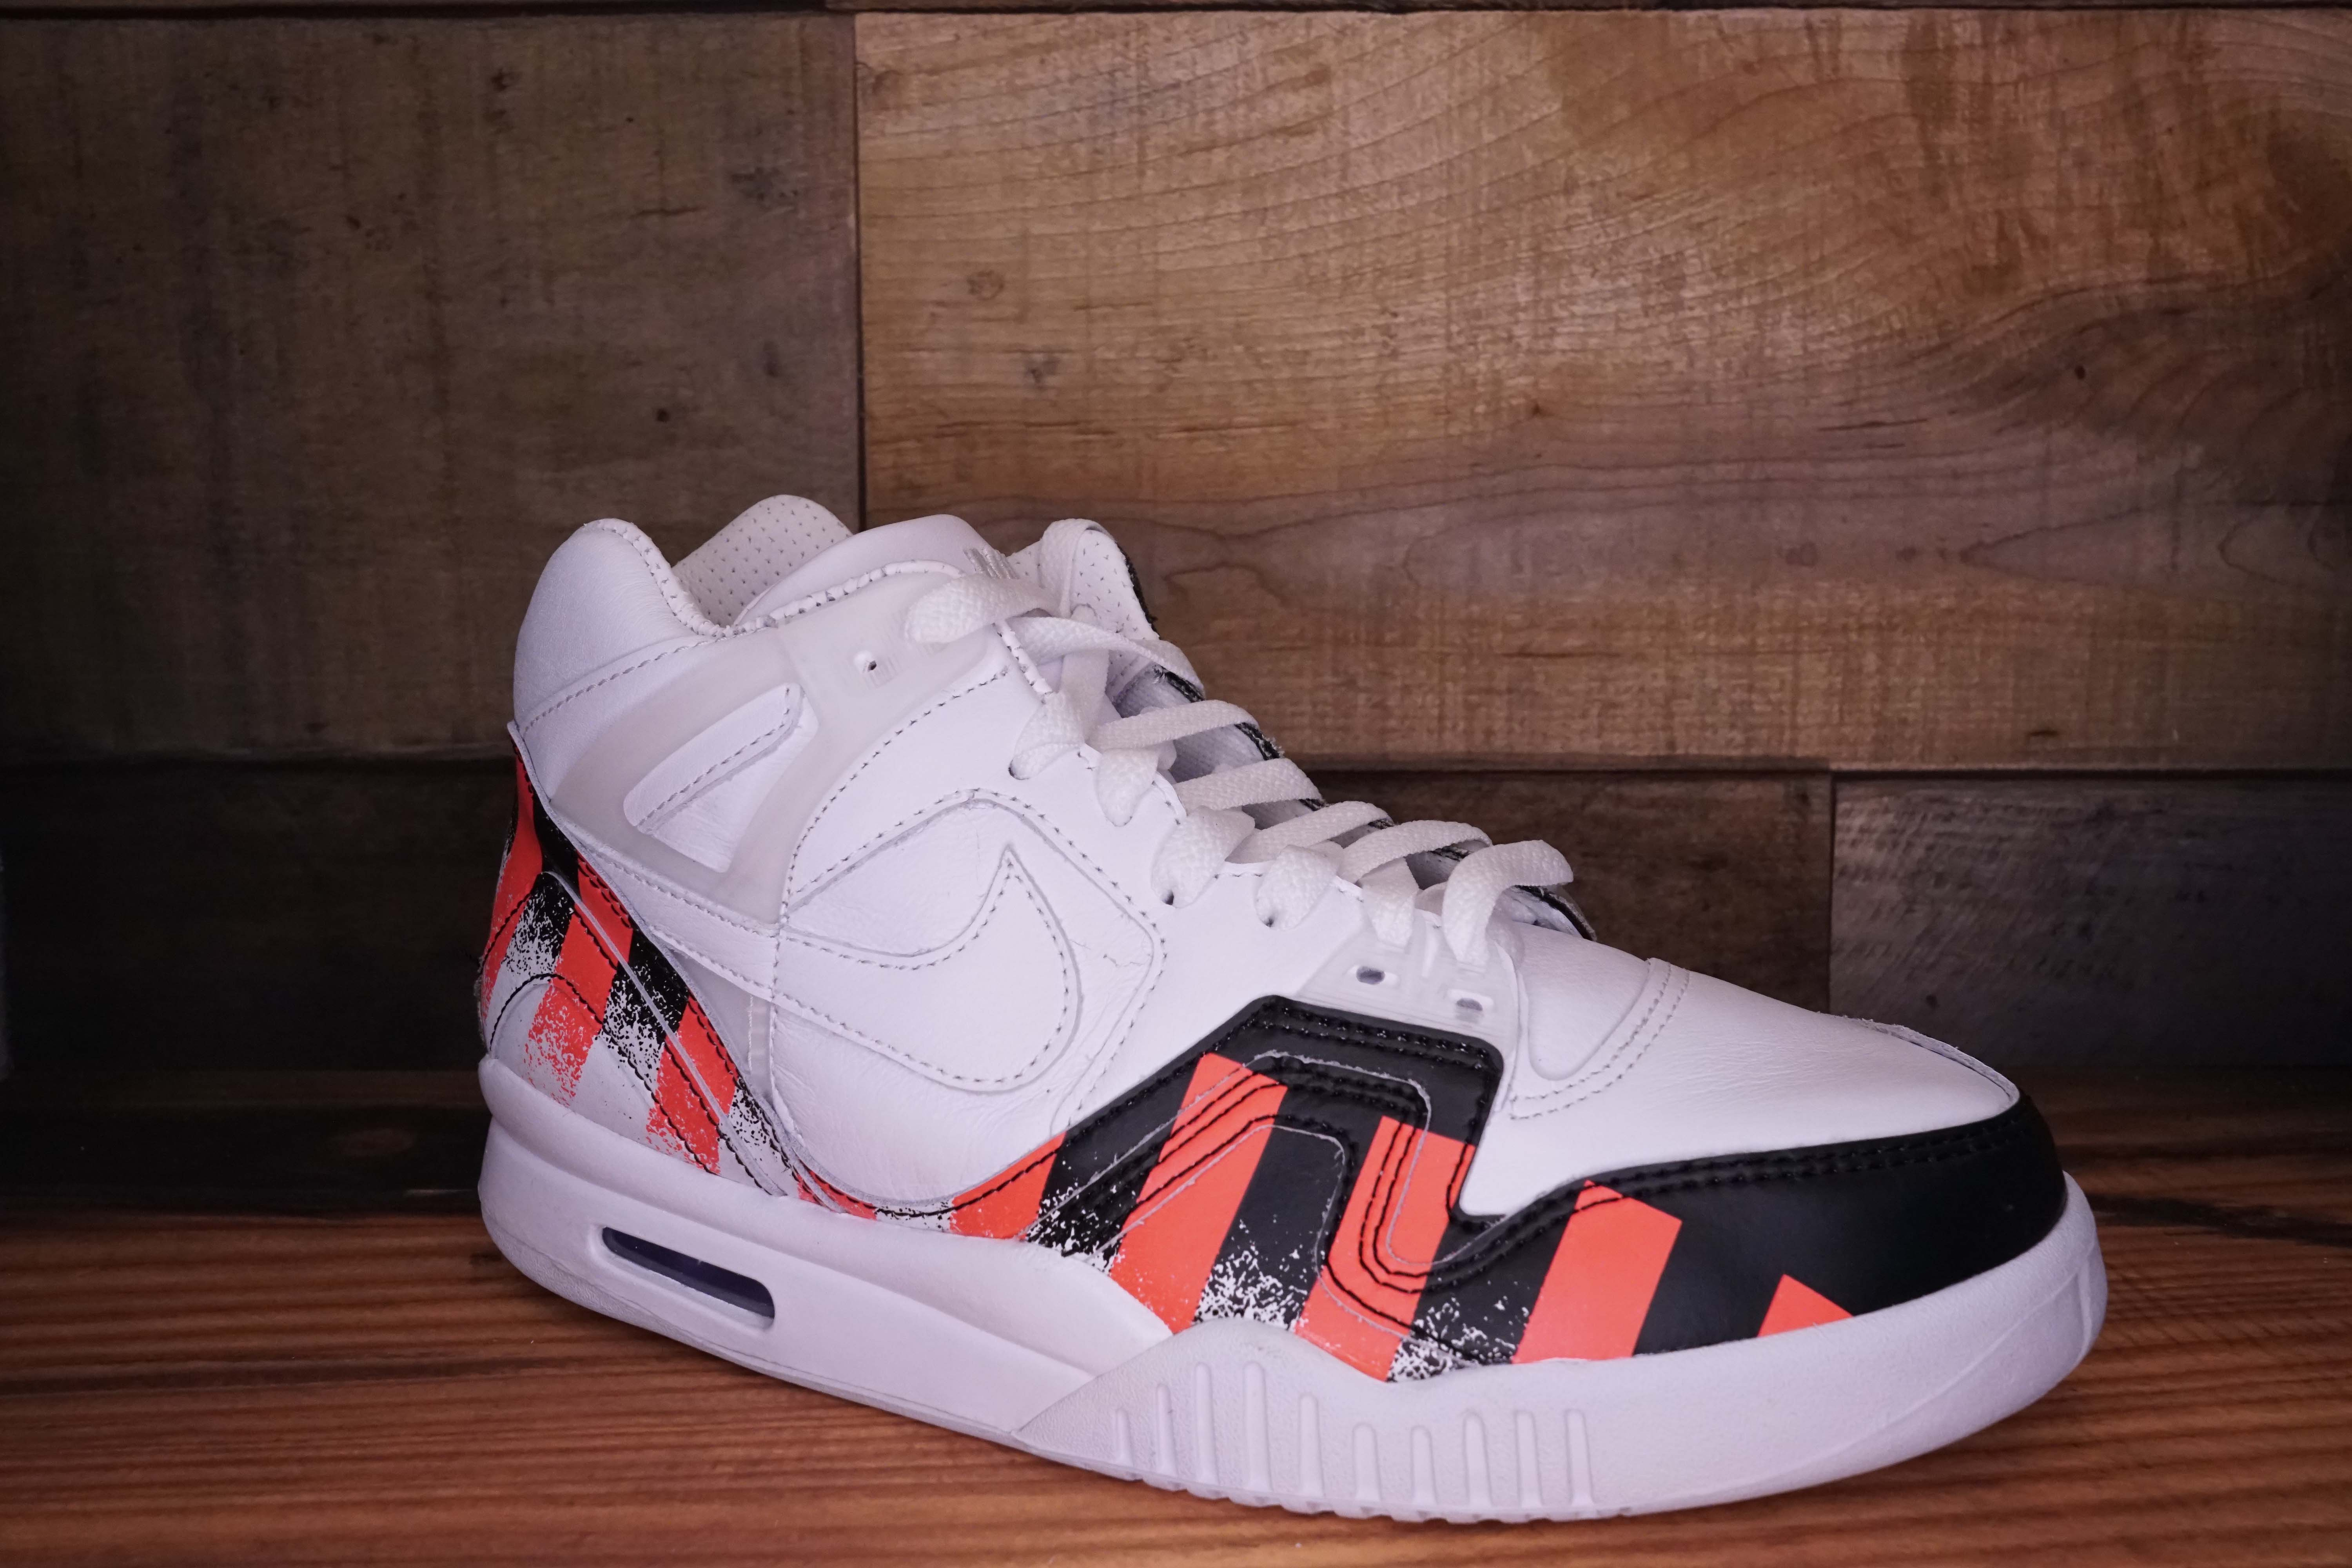 38f1aa510ef2 Nike-Air-Tech-Challenge-2-FRENCH-OPEN-Size-